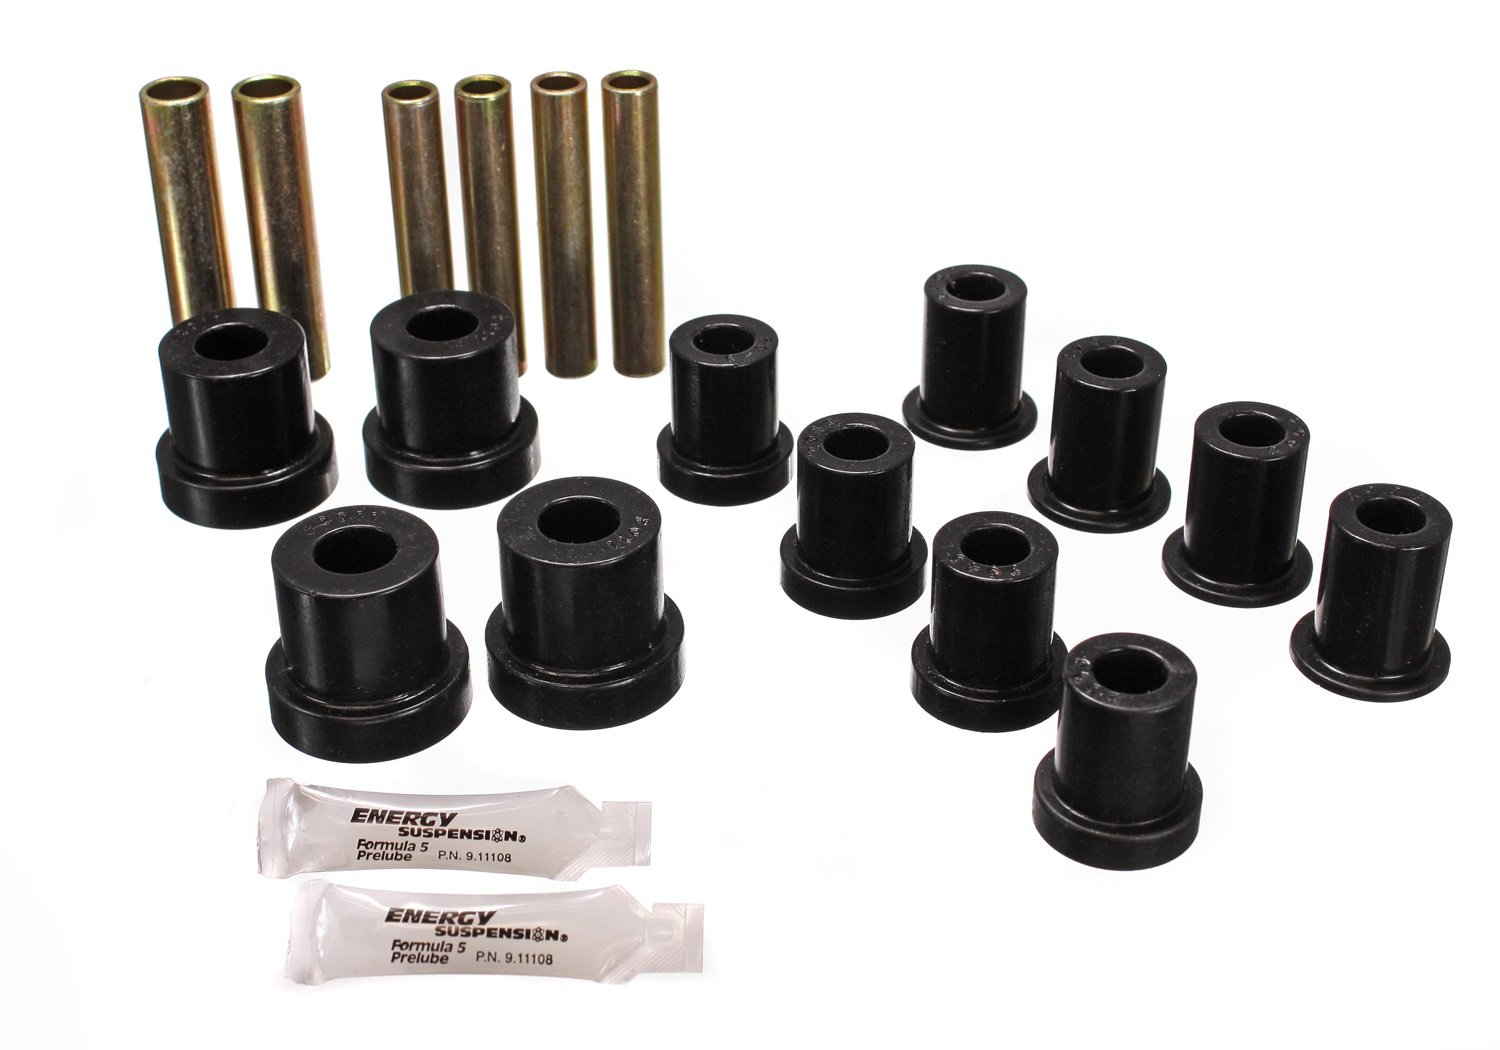 Energy Suspension 3.2112G A.M. Front Spring Bushing for GM 4X